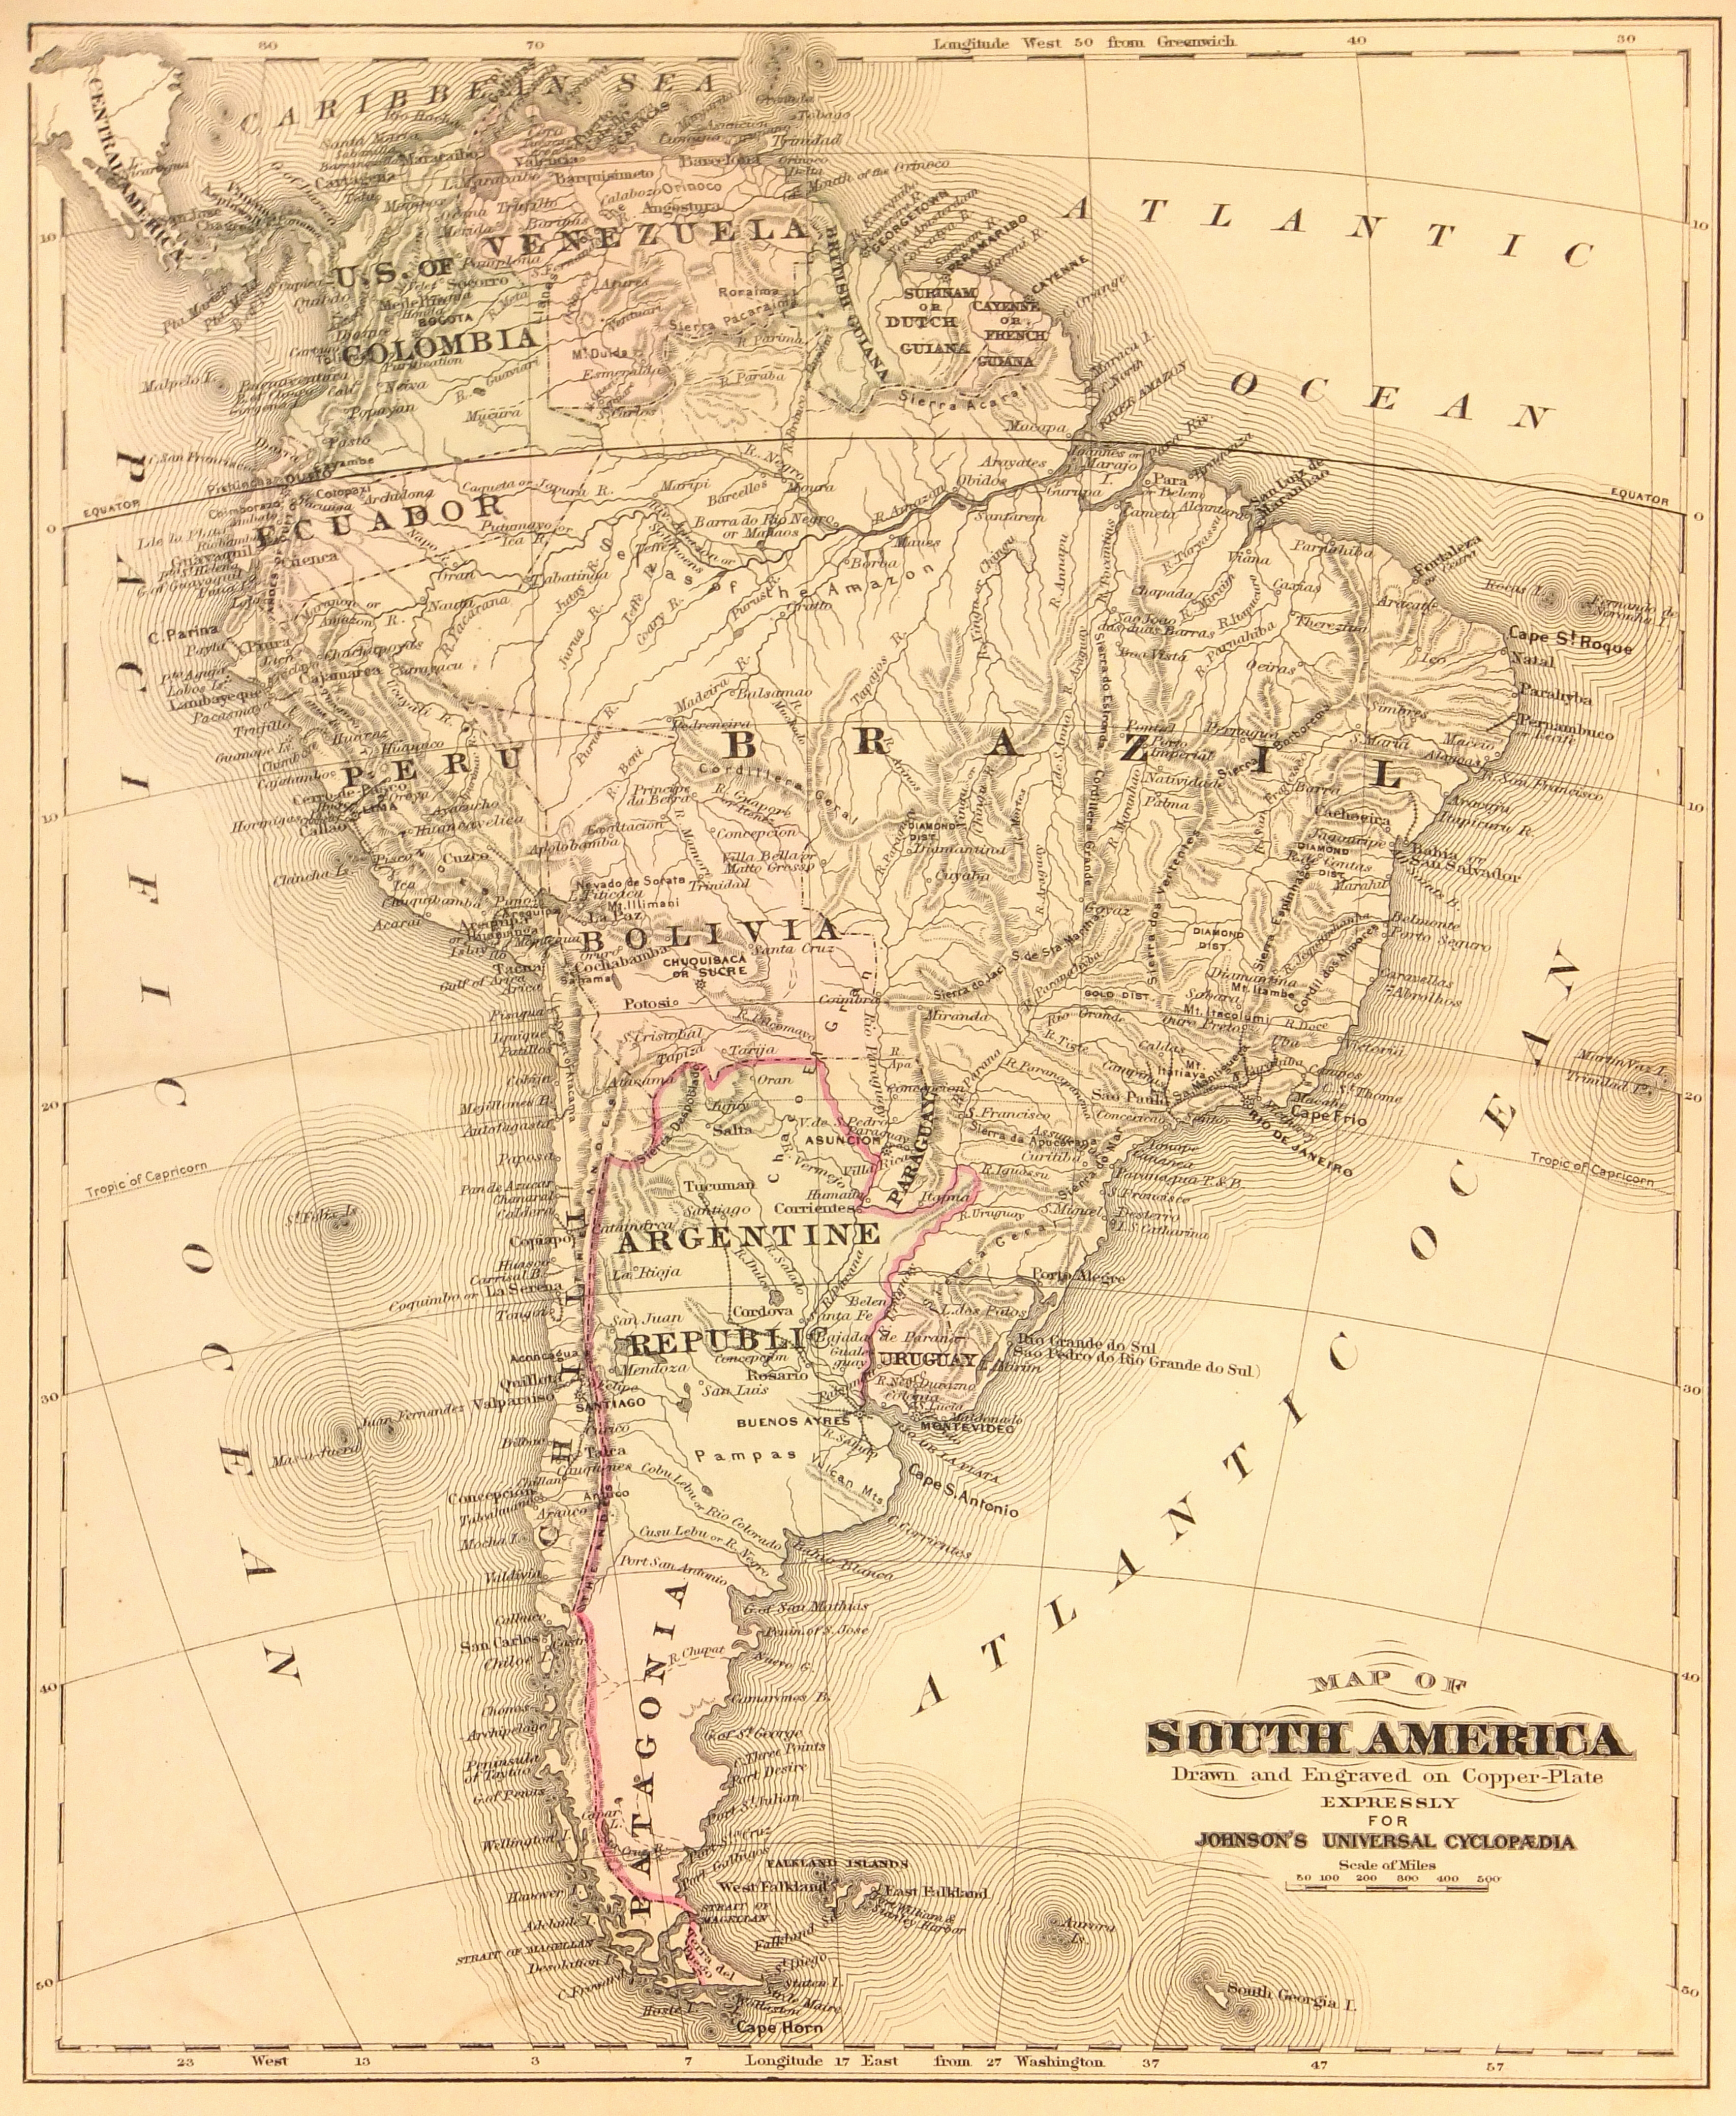 South America Map, 1885 on landscape map of south america, industrial map of south america, agricultural map of south america, soil map of south america, peopling of south america, physical map of south america, geographical center of south america, grand tour of south america, natural map of south america, tectonic map of south america, linguistic map of south america, land use map of south america, map of volcanoes in north america, location of patagonia in south america, circumnavigation of south america, earthquake map of south america, precambrian north america, historic map of south america, thermal map of south america, large map of south america,